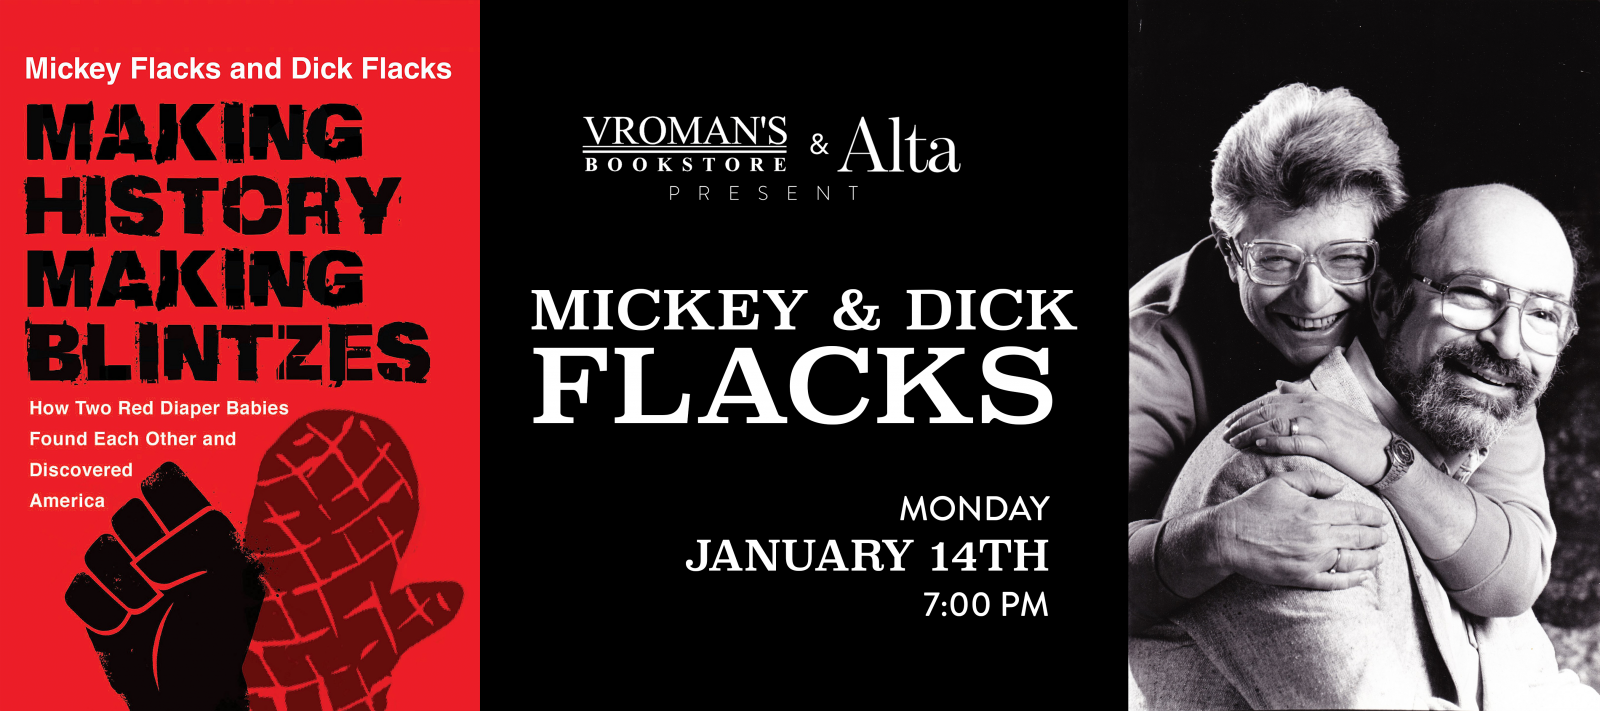 Mickey and Dick Flacks Monday January 14th at 7pm